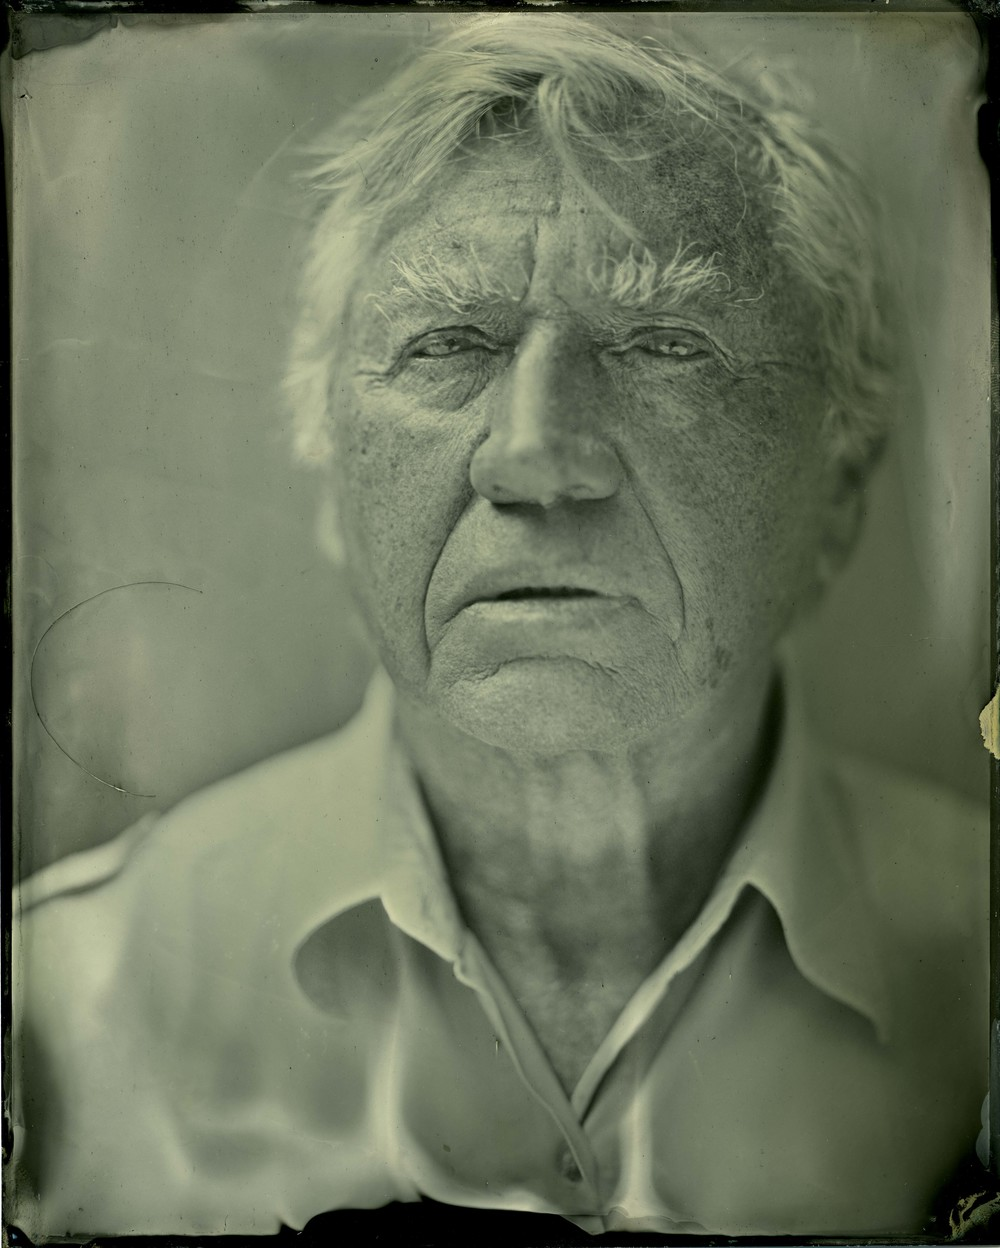 'This man's eyes are our conscience'. Don McCullin, Arles.